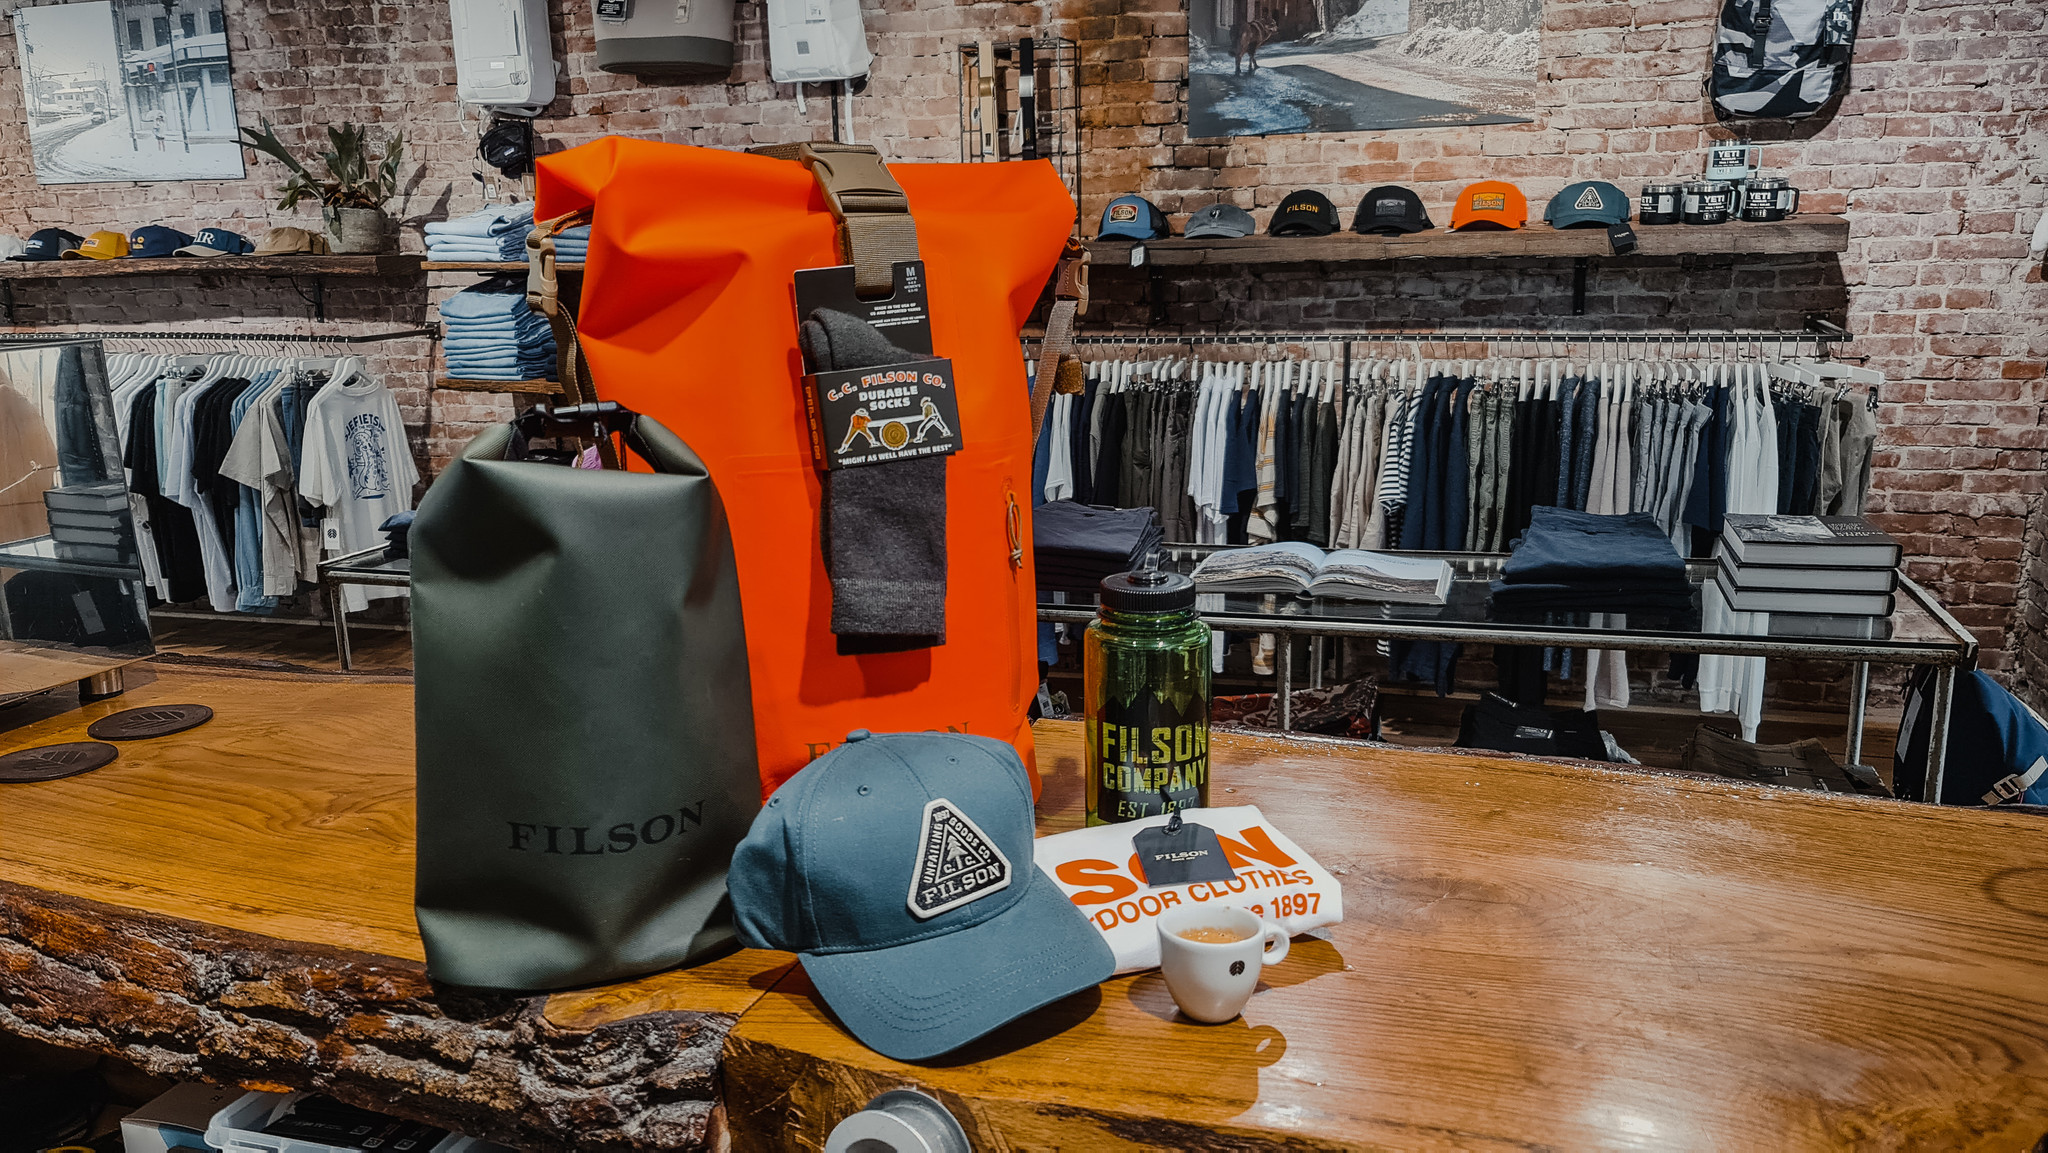 Filson Outdoor Pack Giveaway